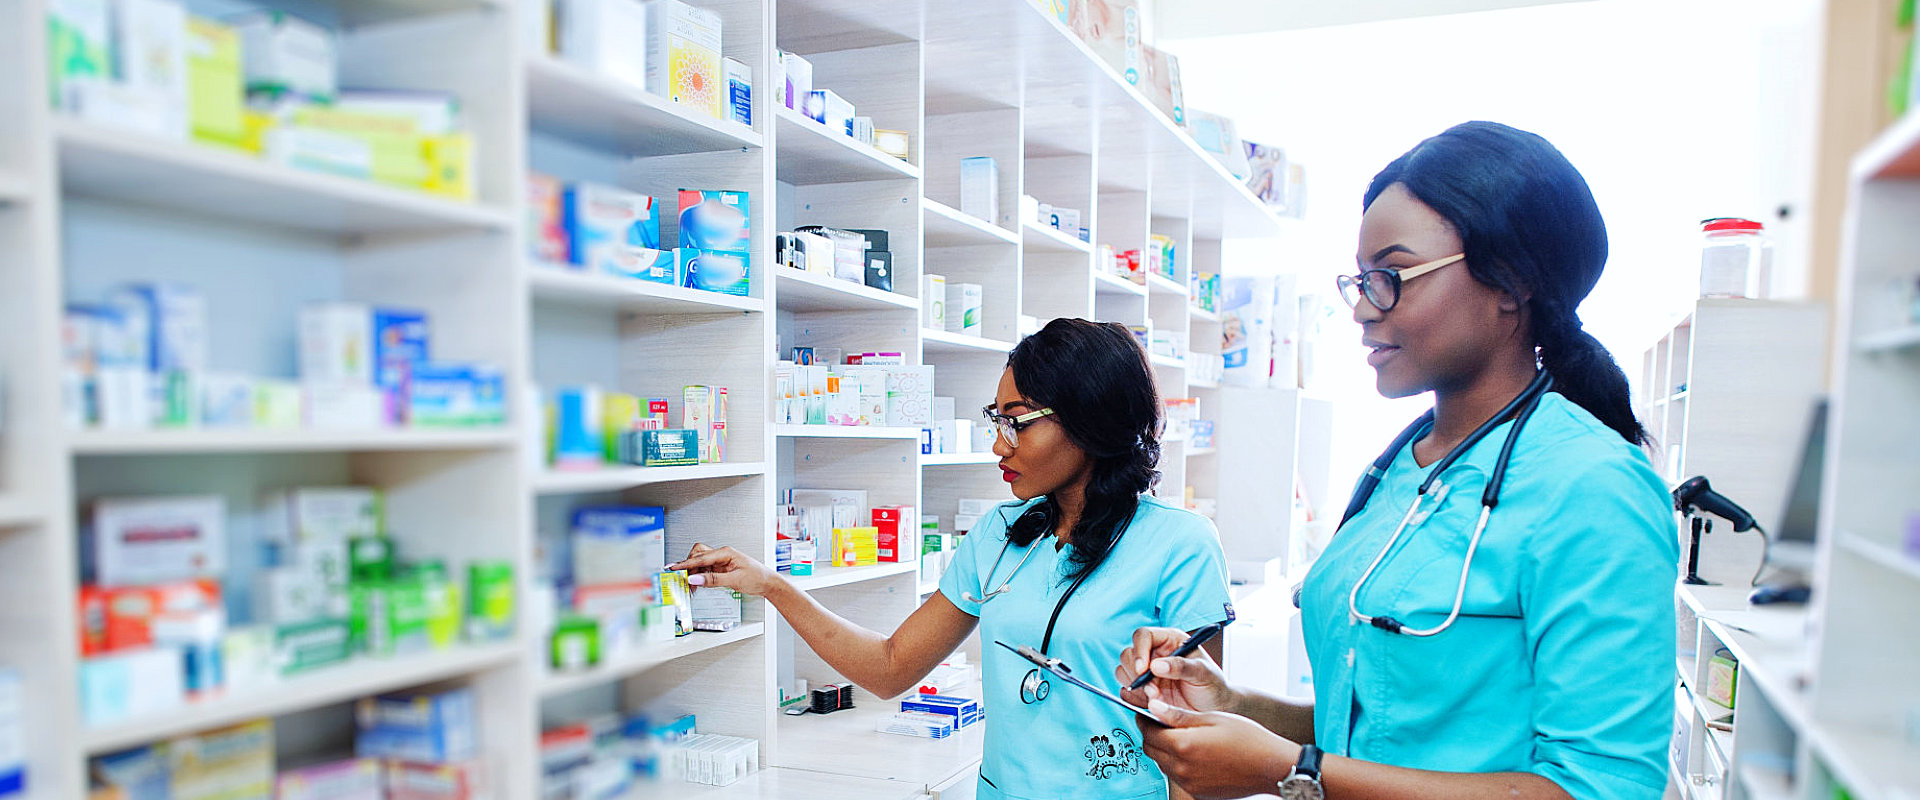 pharmacists showing doing inventory